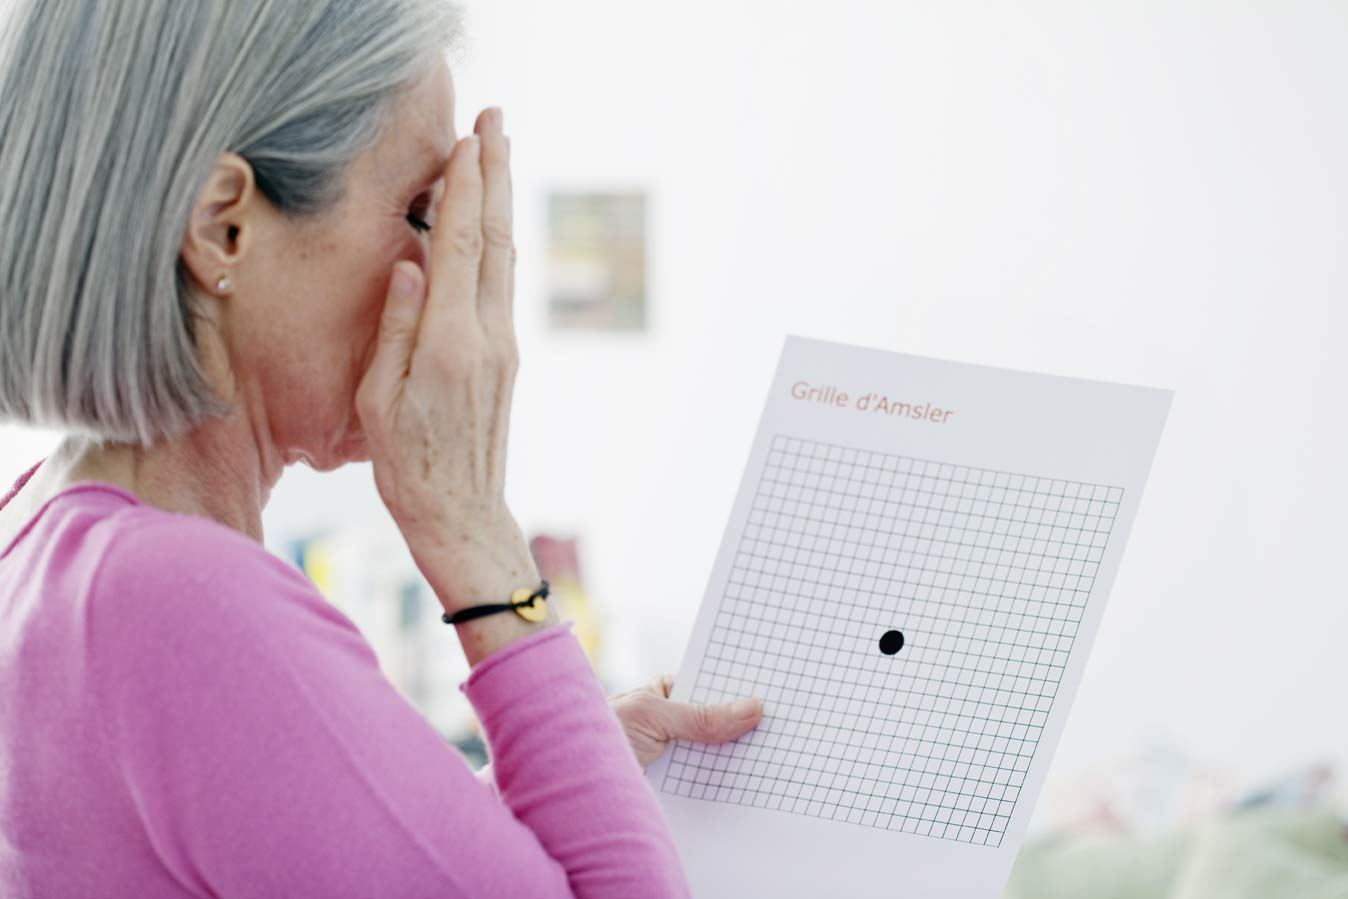 A 50 to 60 year old woman testing her vision with an macular degeneration grid